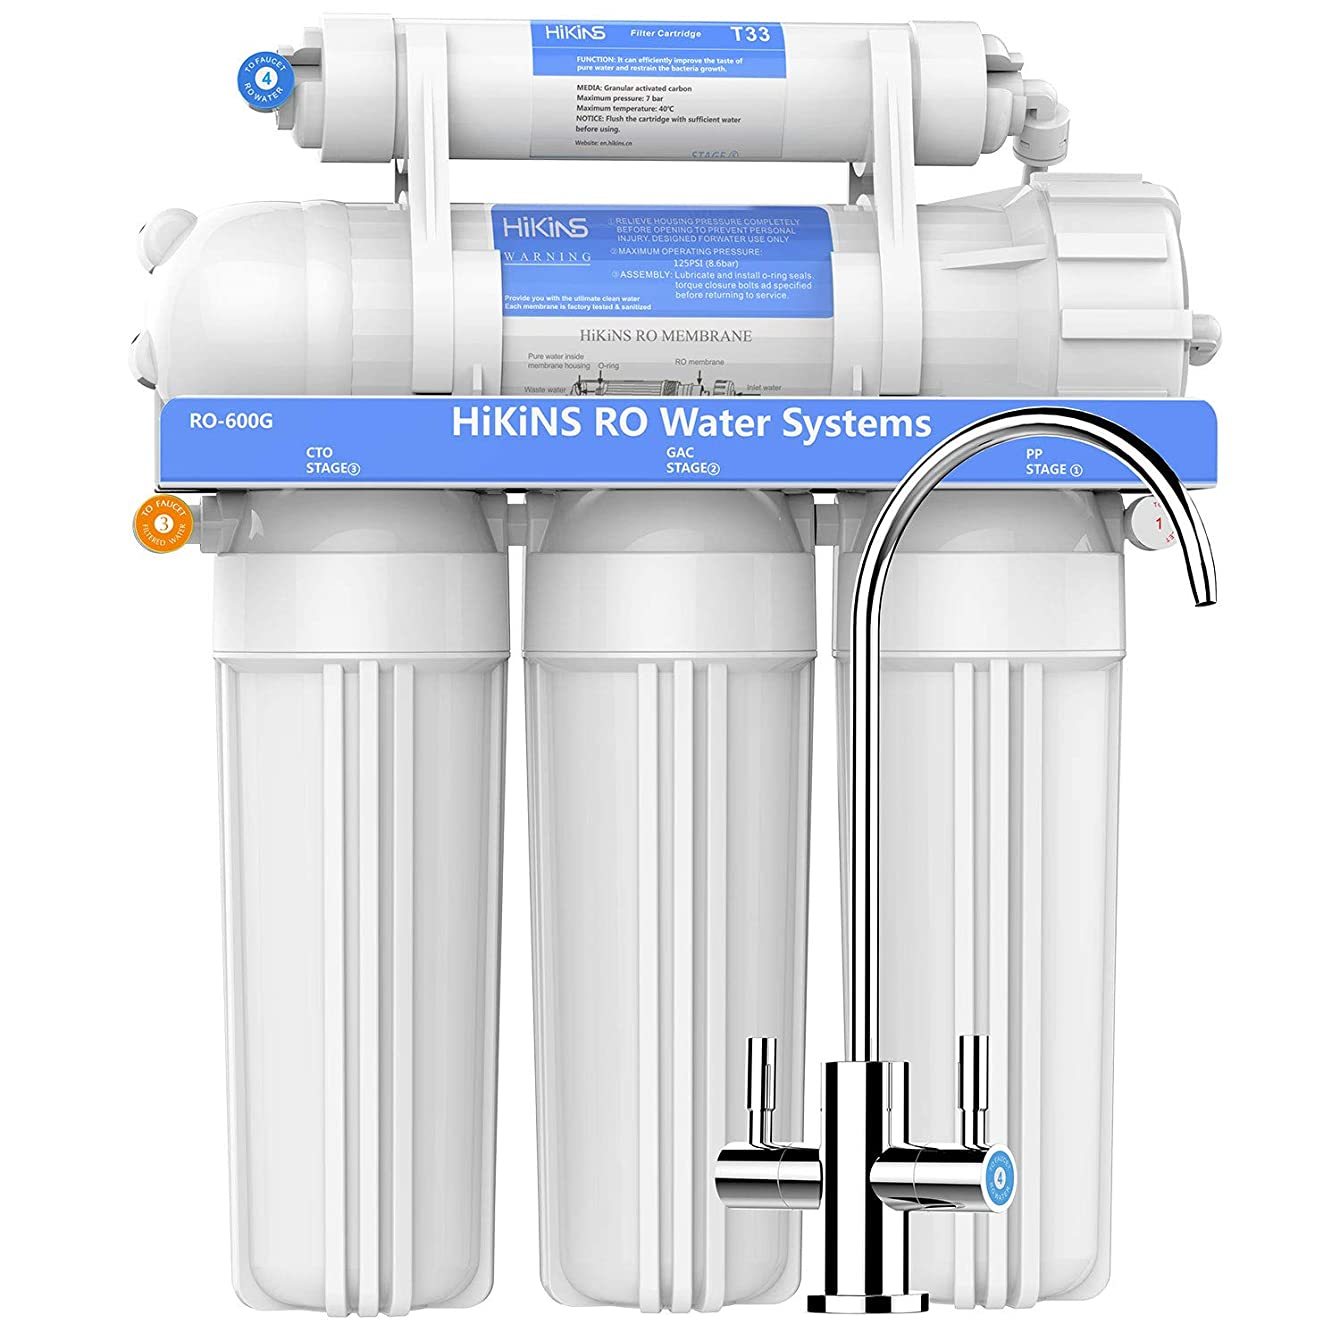 HiKiNS 600GPD Reverse Osmosis Water Filtration System Tankless High Flow 5-Stage Under Sink RO System with Double Water Quality